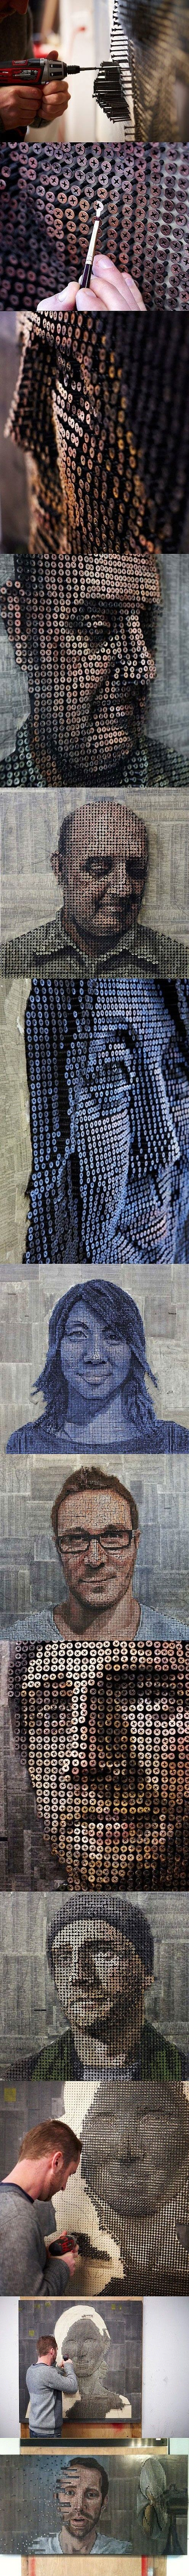 3D Portraits Made Out Of Screws... one of the most unique & interesting mediums I've ever seen! Way to think outside of the box & run with it! Wow!